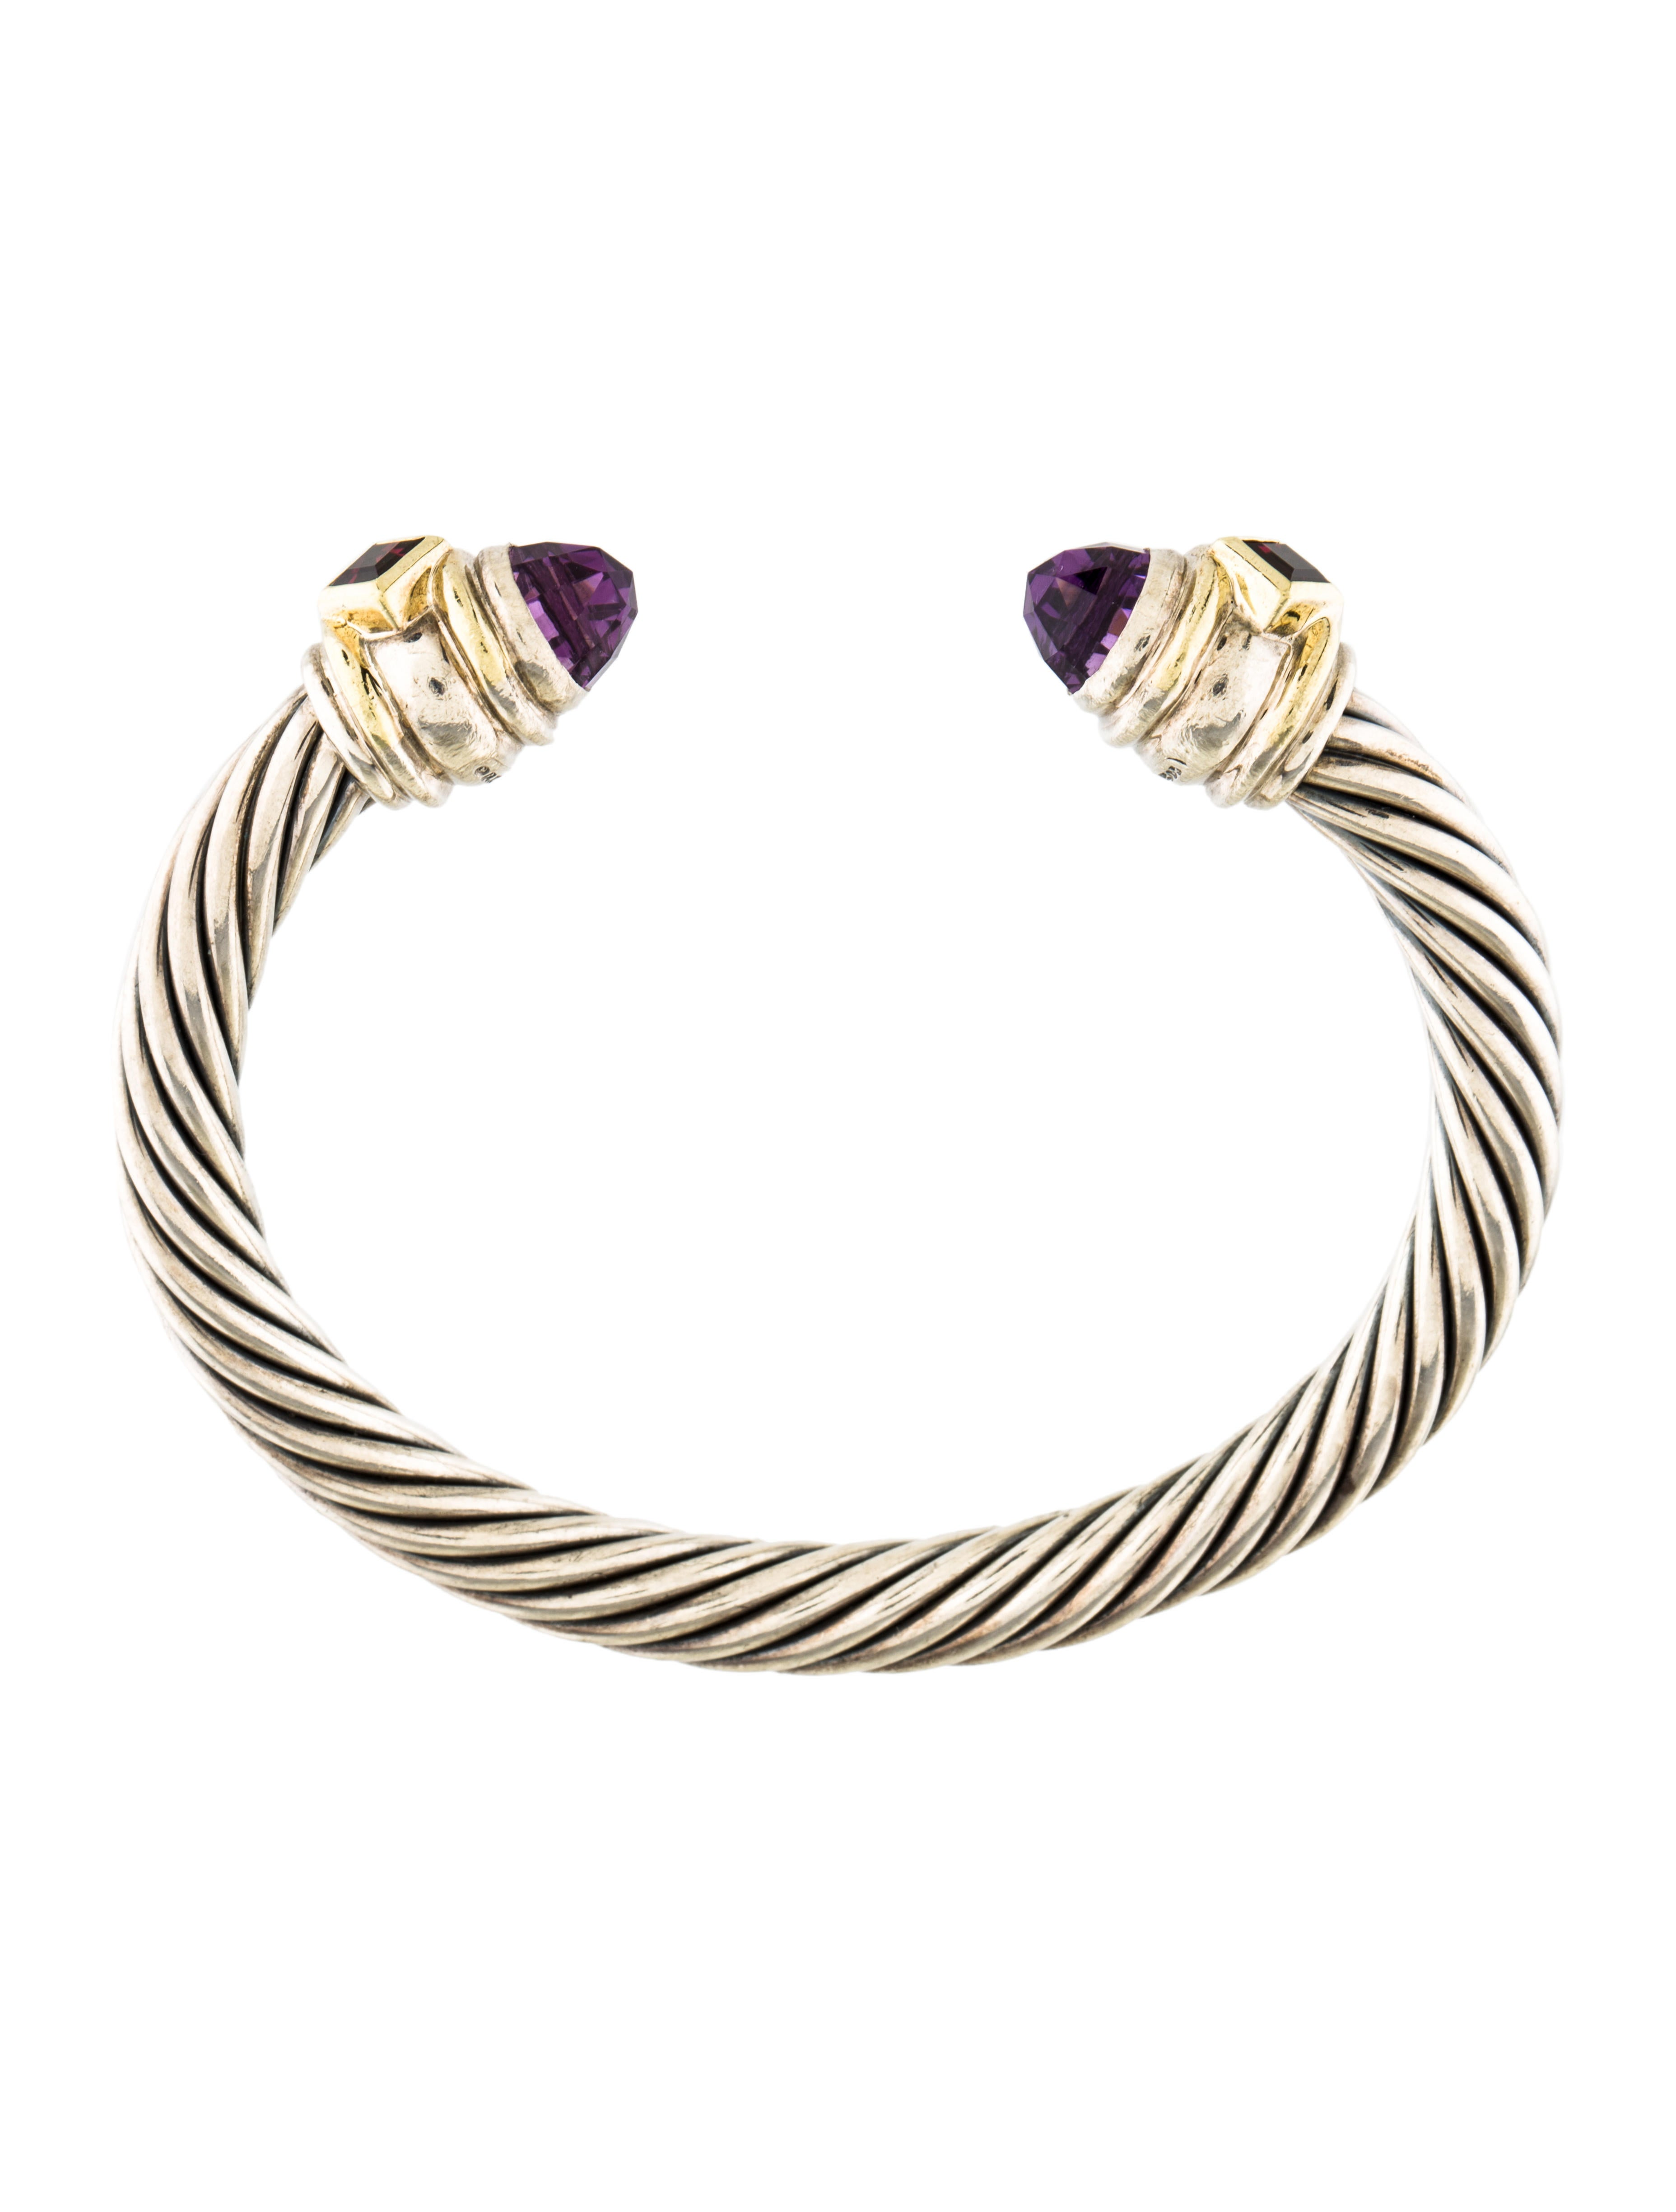 David yurman renaissance cable cuff bracelet bracelets for David yurman inspired bracelet cable